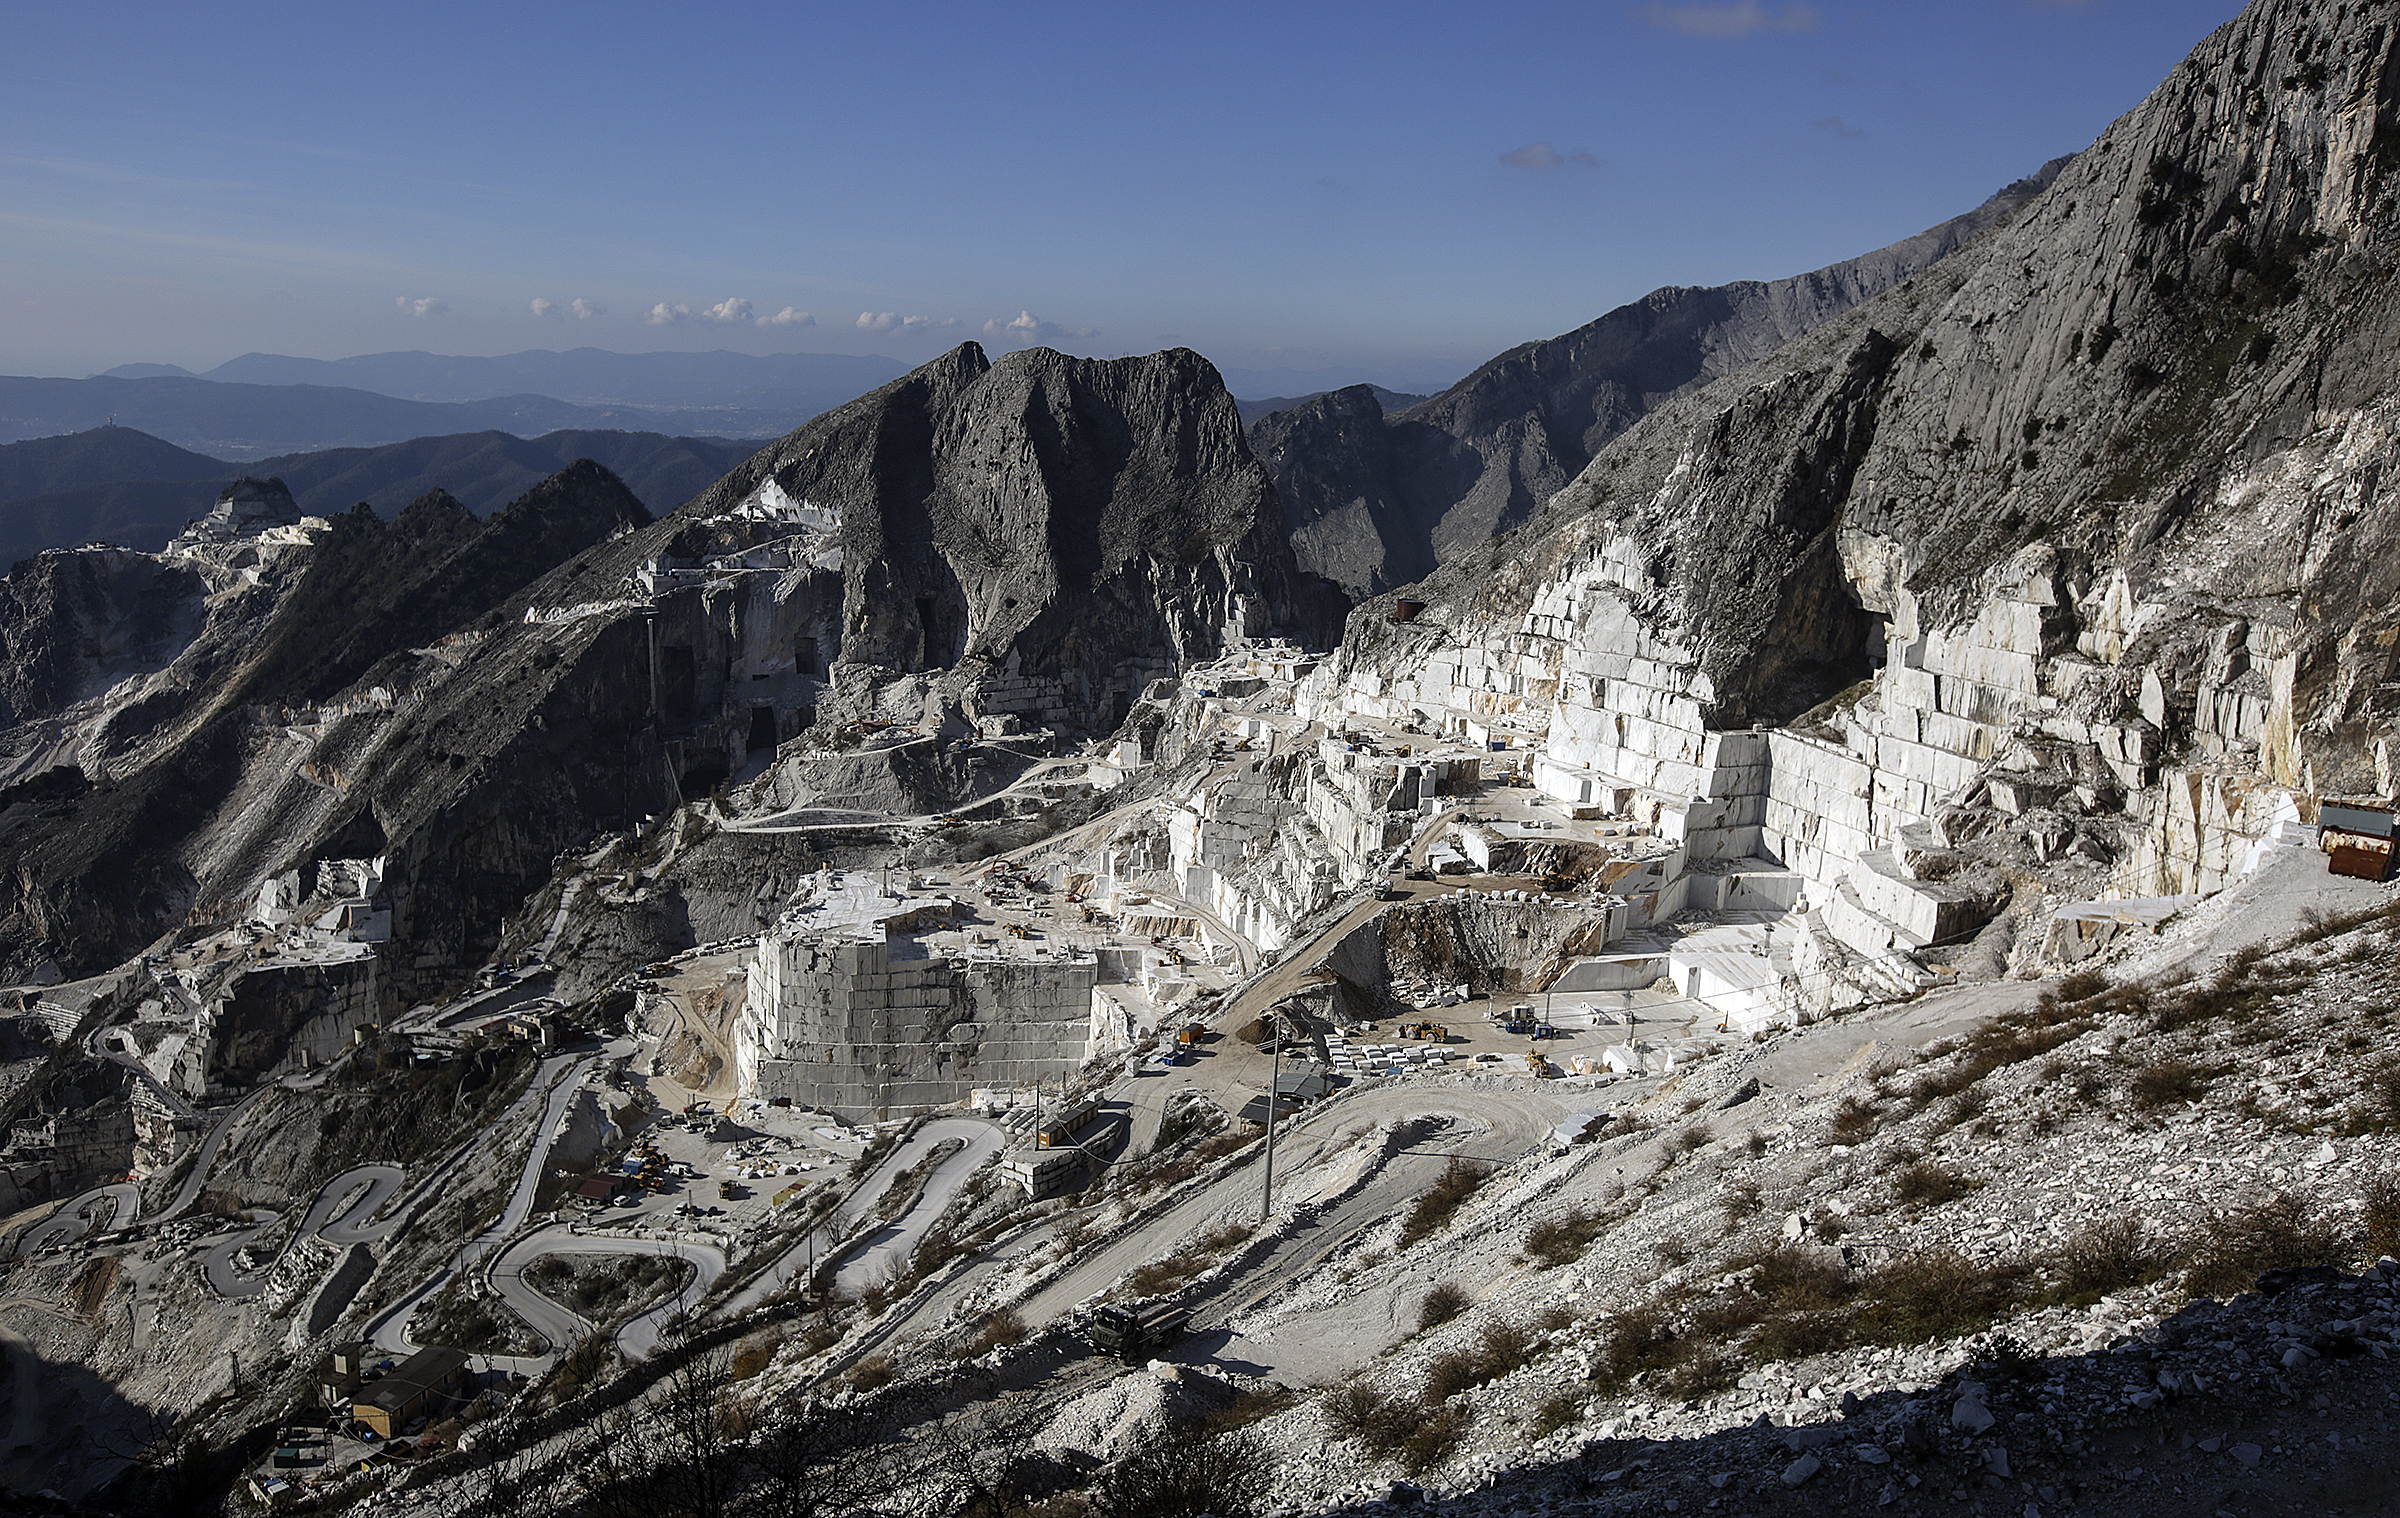 Marble quarry in Carrara, Italy, on Thursday, Nov. 15, 2018.